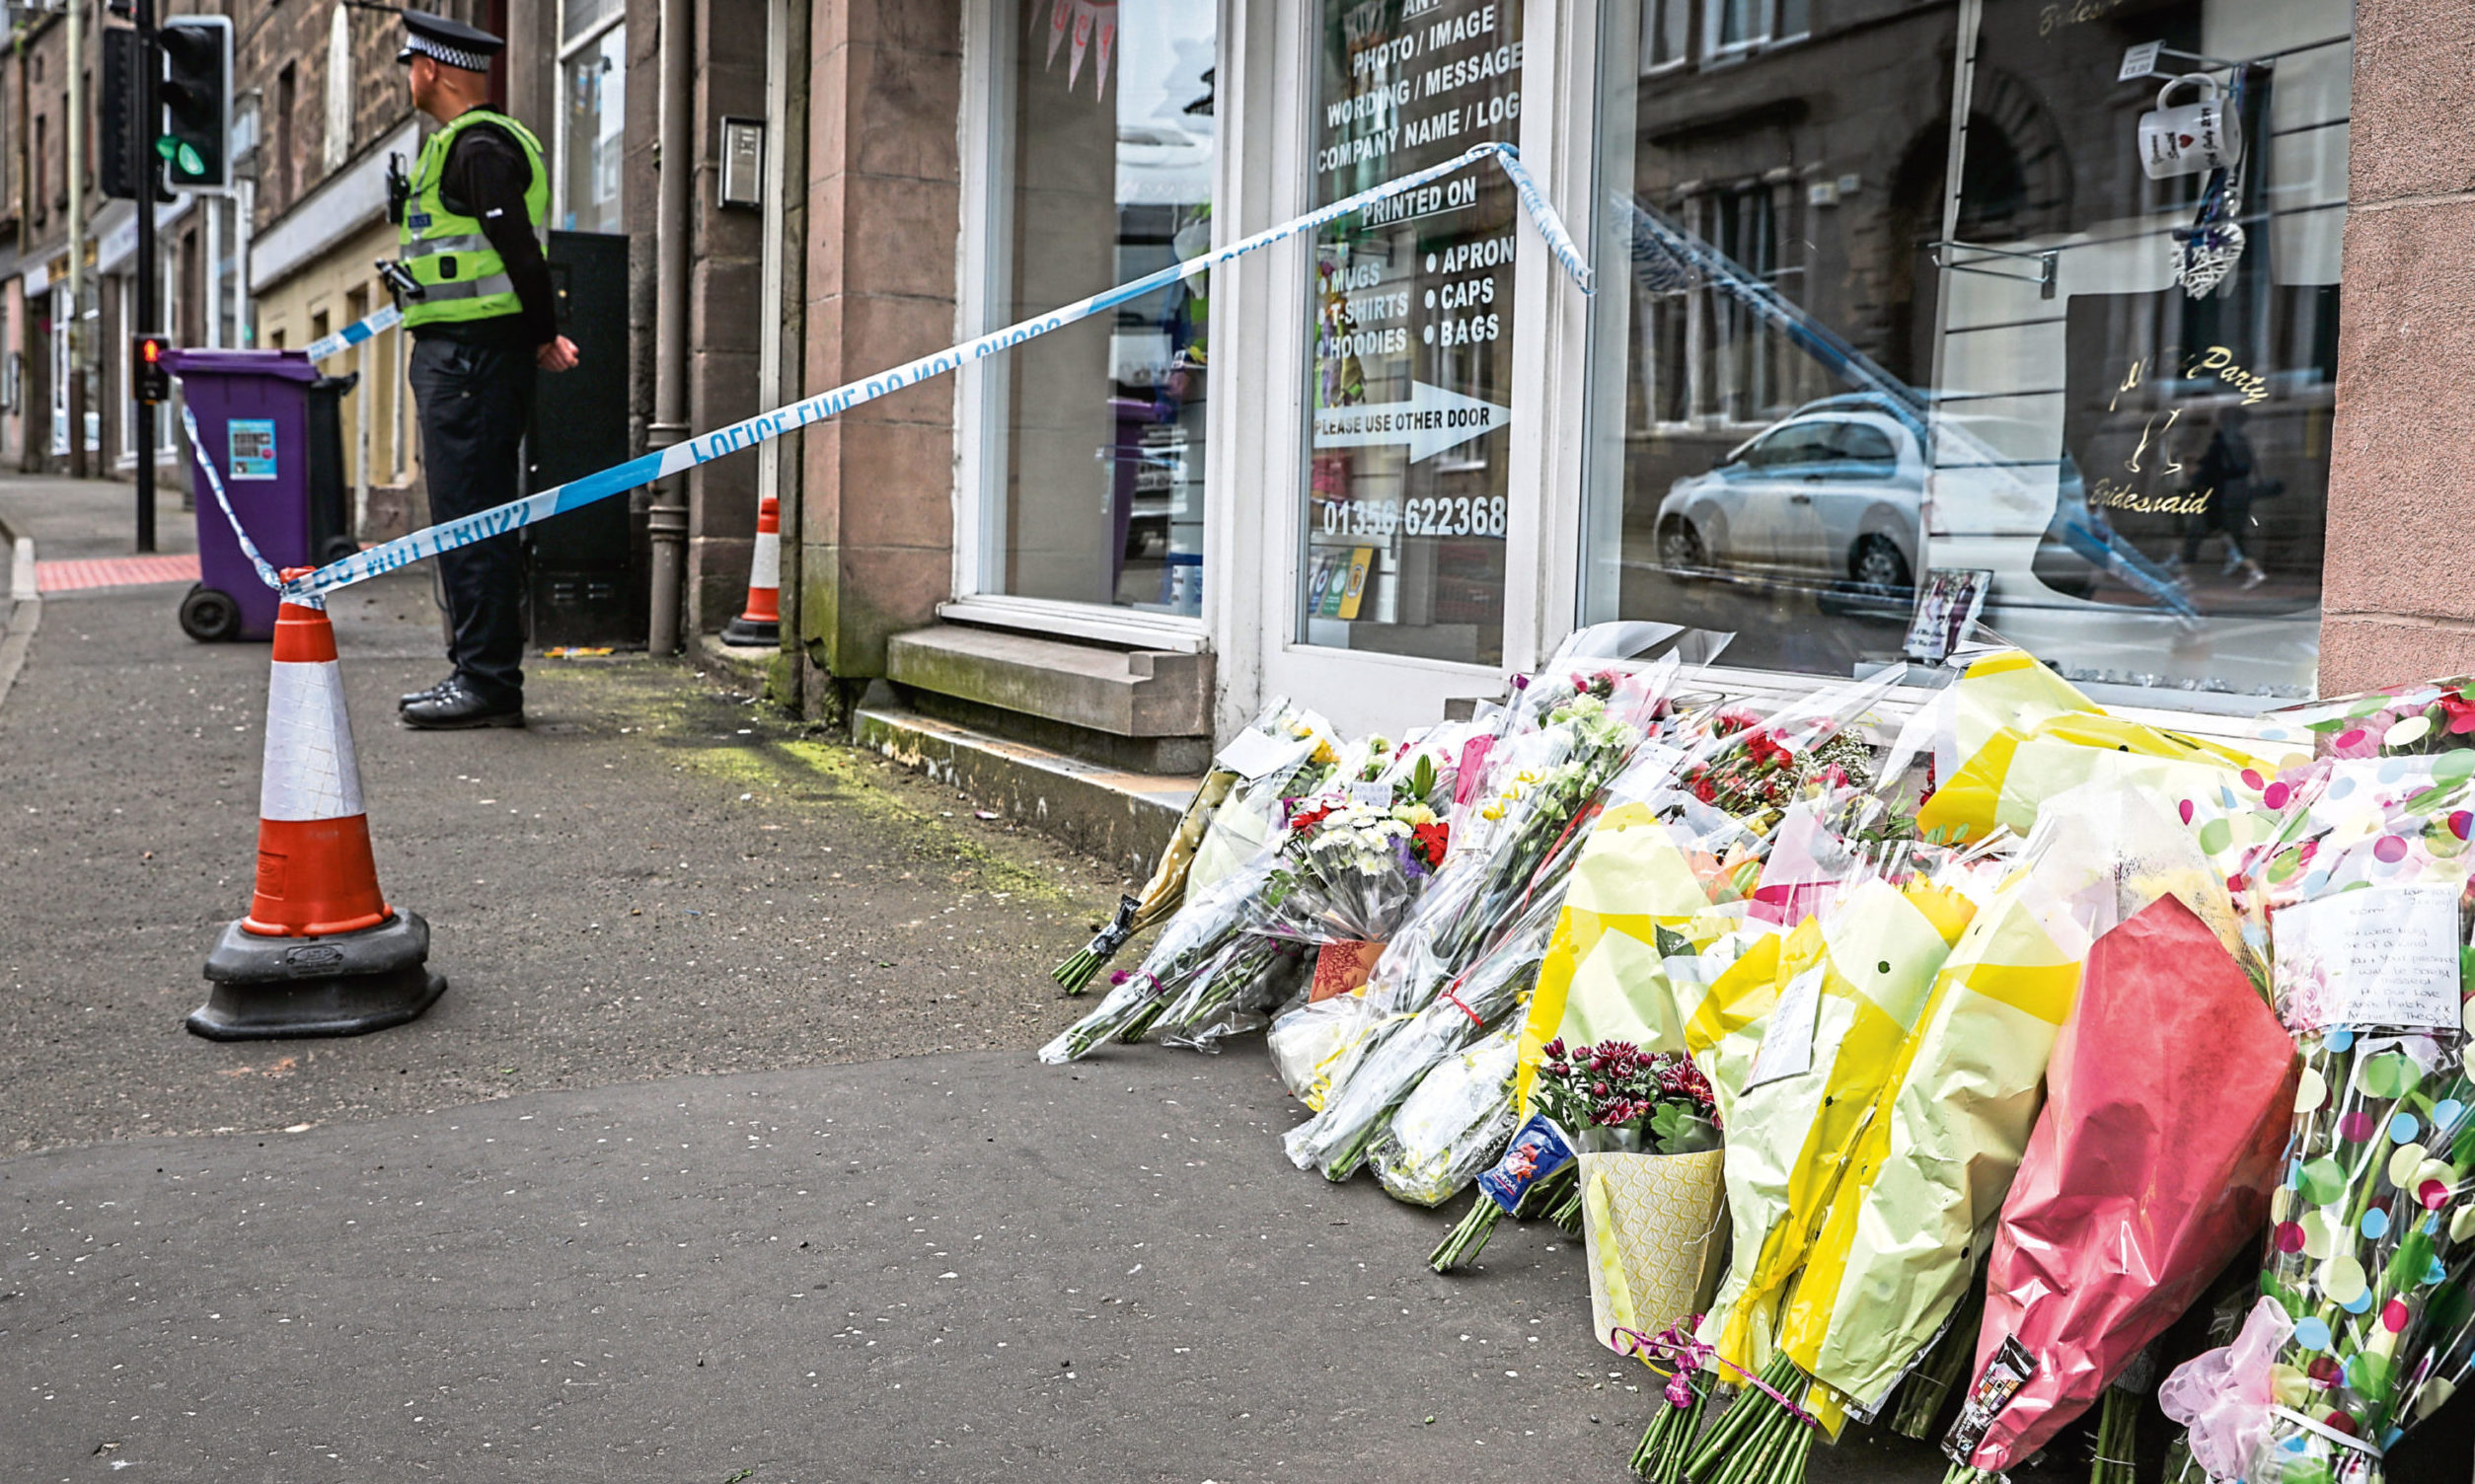 Tributes laid for Neomi Smith in Brechin following her death.